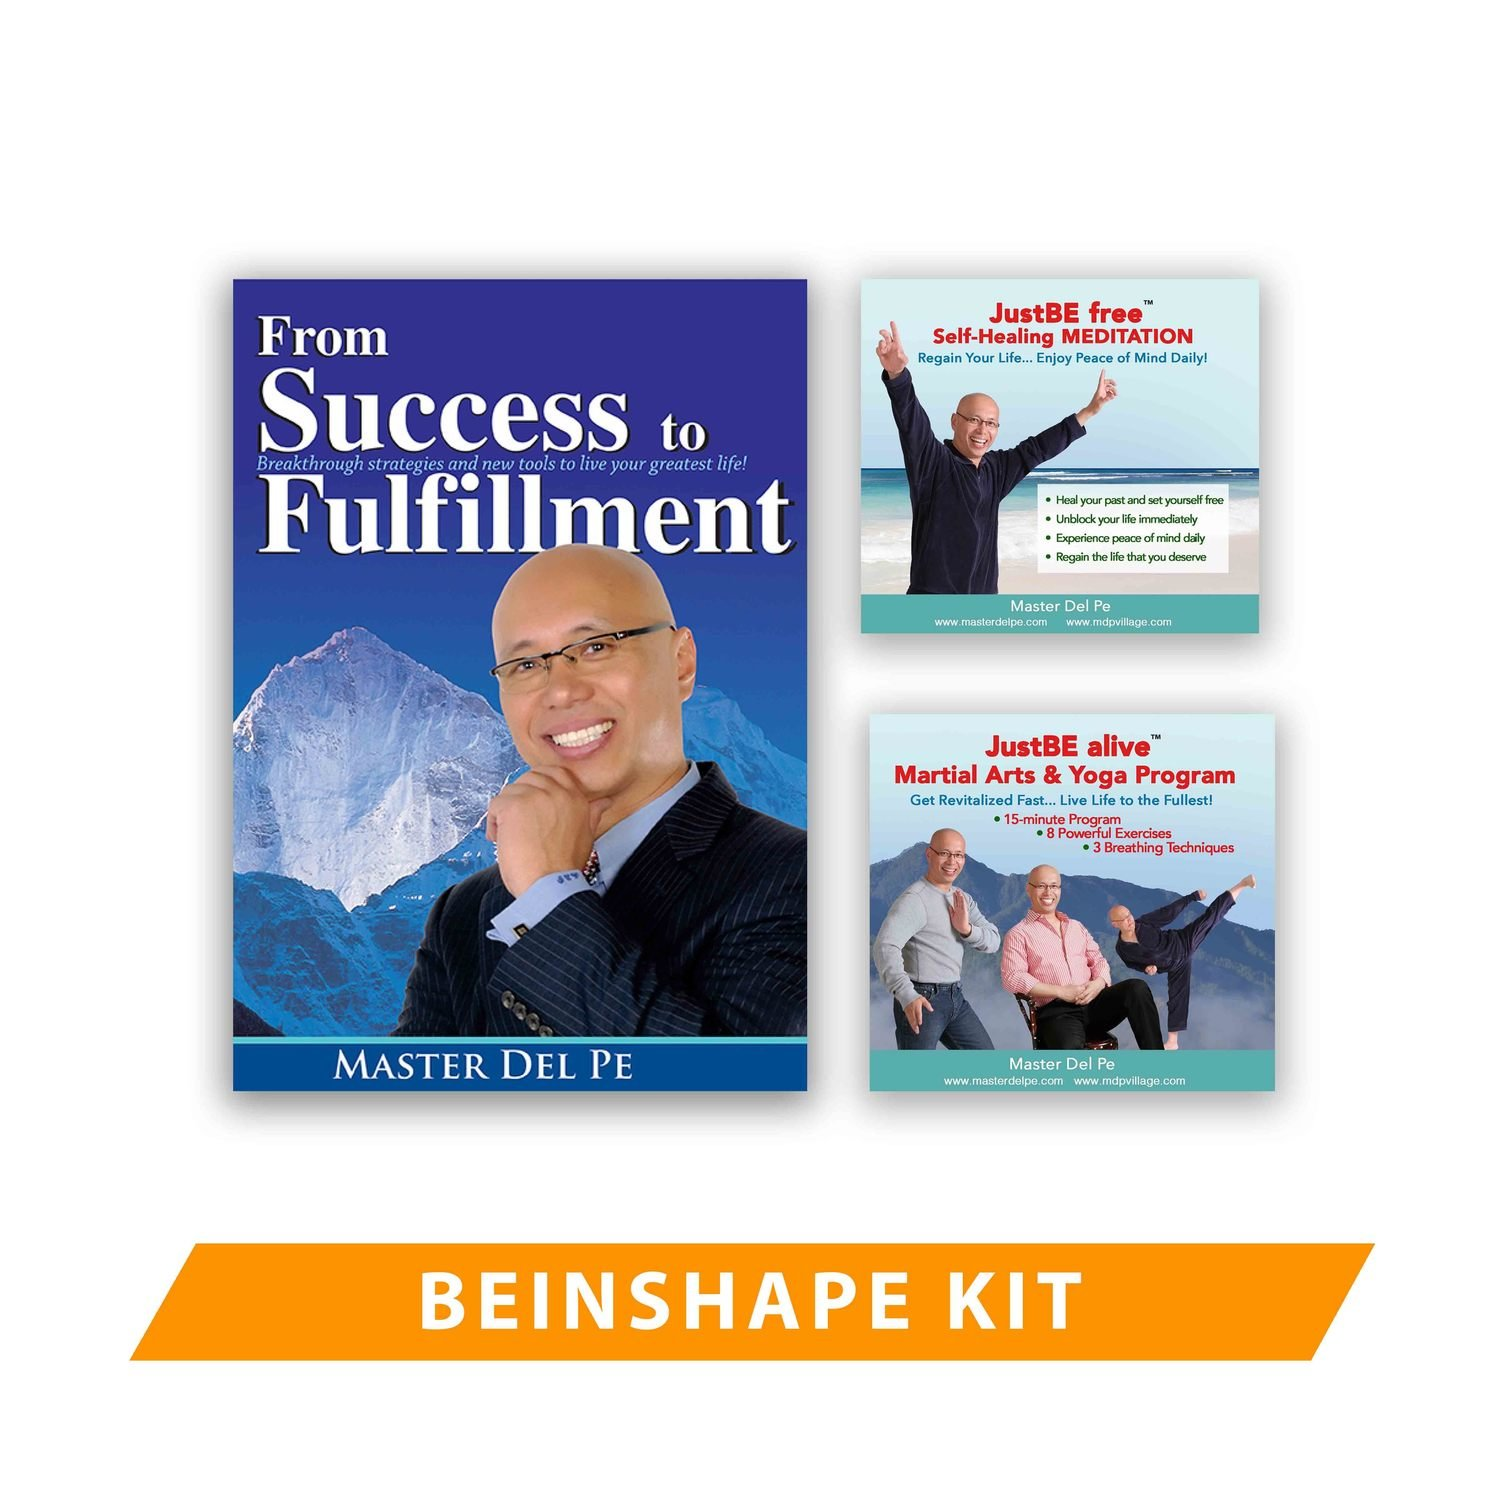 BEinshape Kit